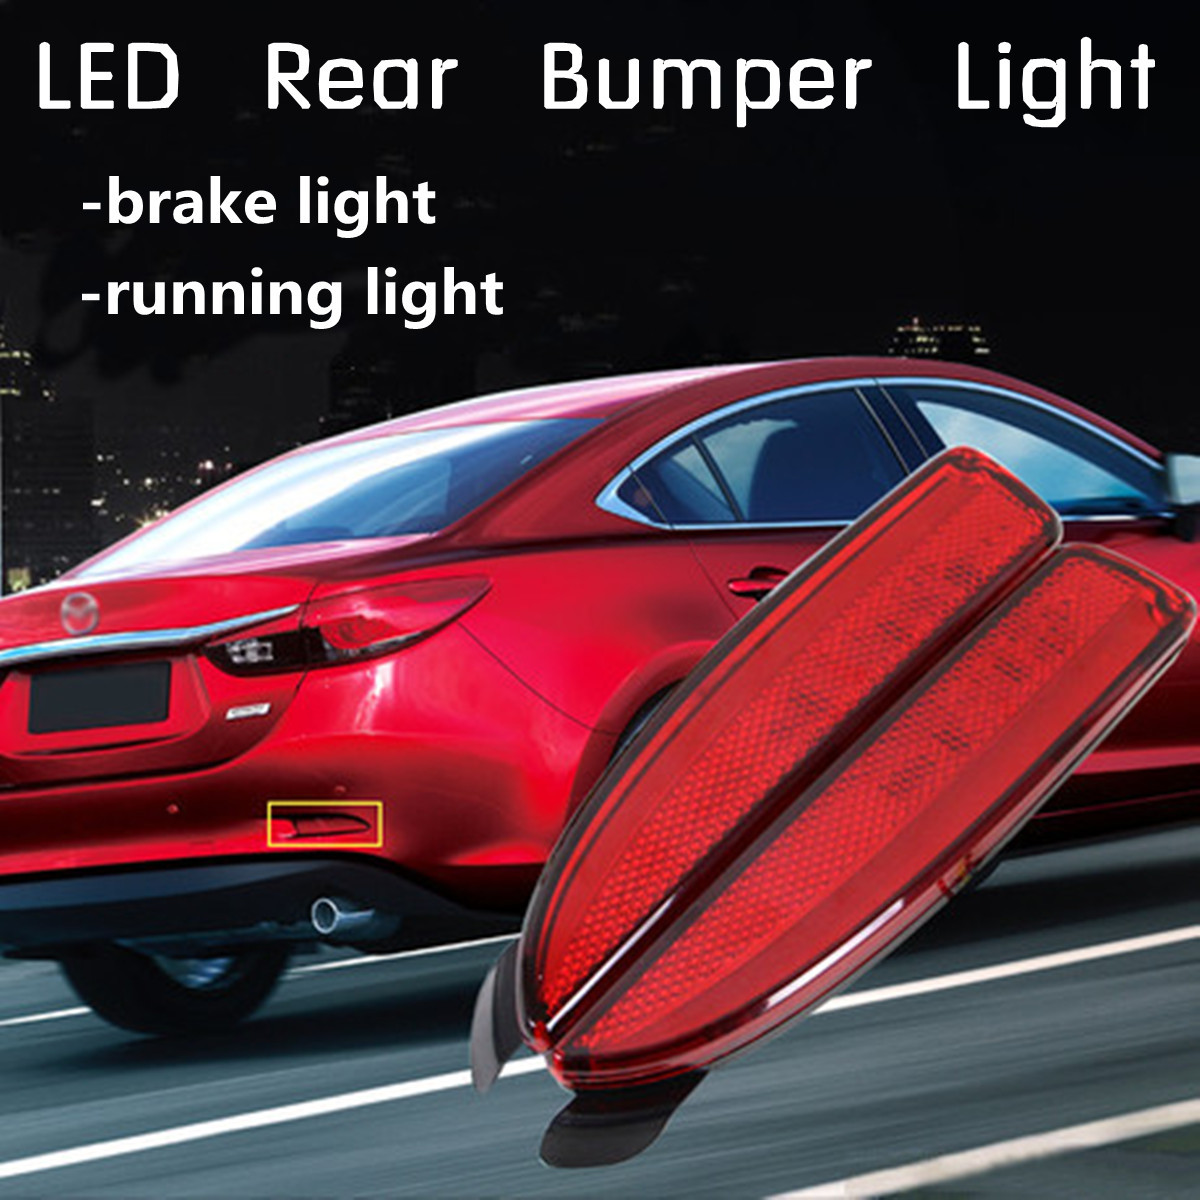 2Pcs LED Rear Bumper Reflector Tail Brake Stop Running <font><b>Light</b></font> For <font><b>Mazda</b></font> <font><b>6</b></font> ATENZA 2014-2016 image